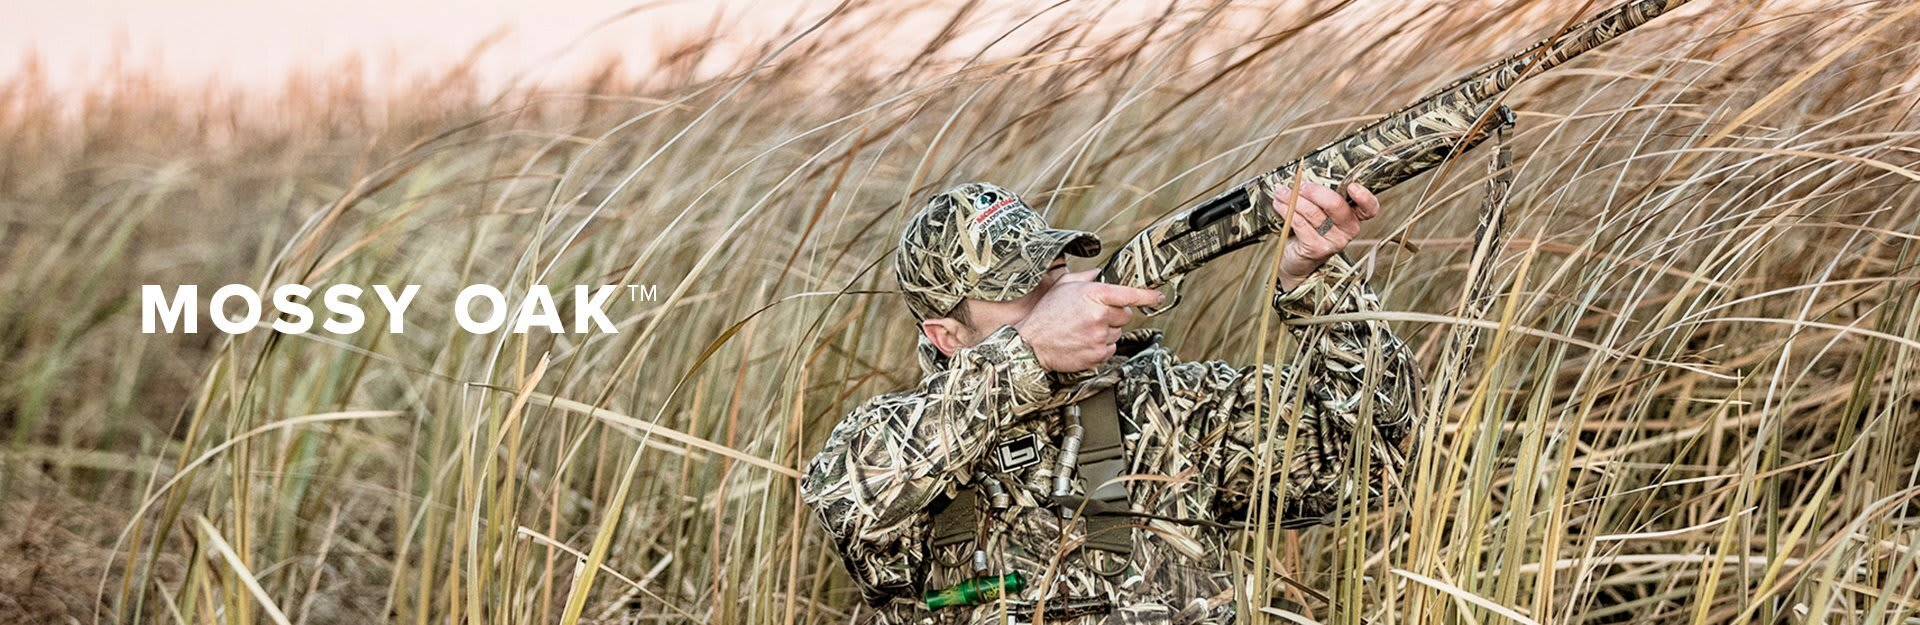 Mossy Oak, a hunter in camo points a shotgun up at some game that is flying